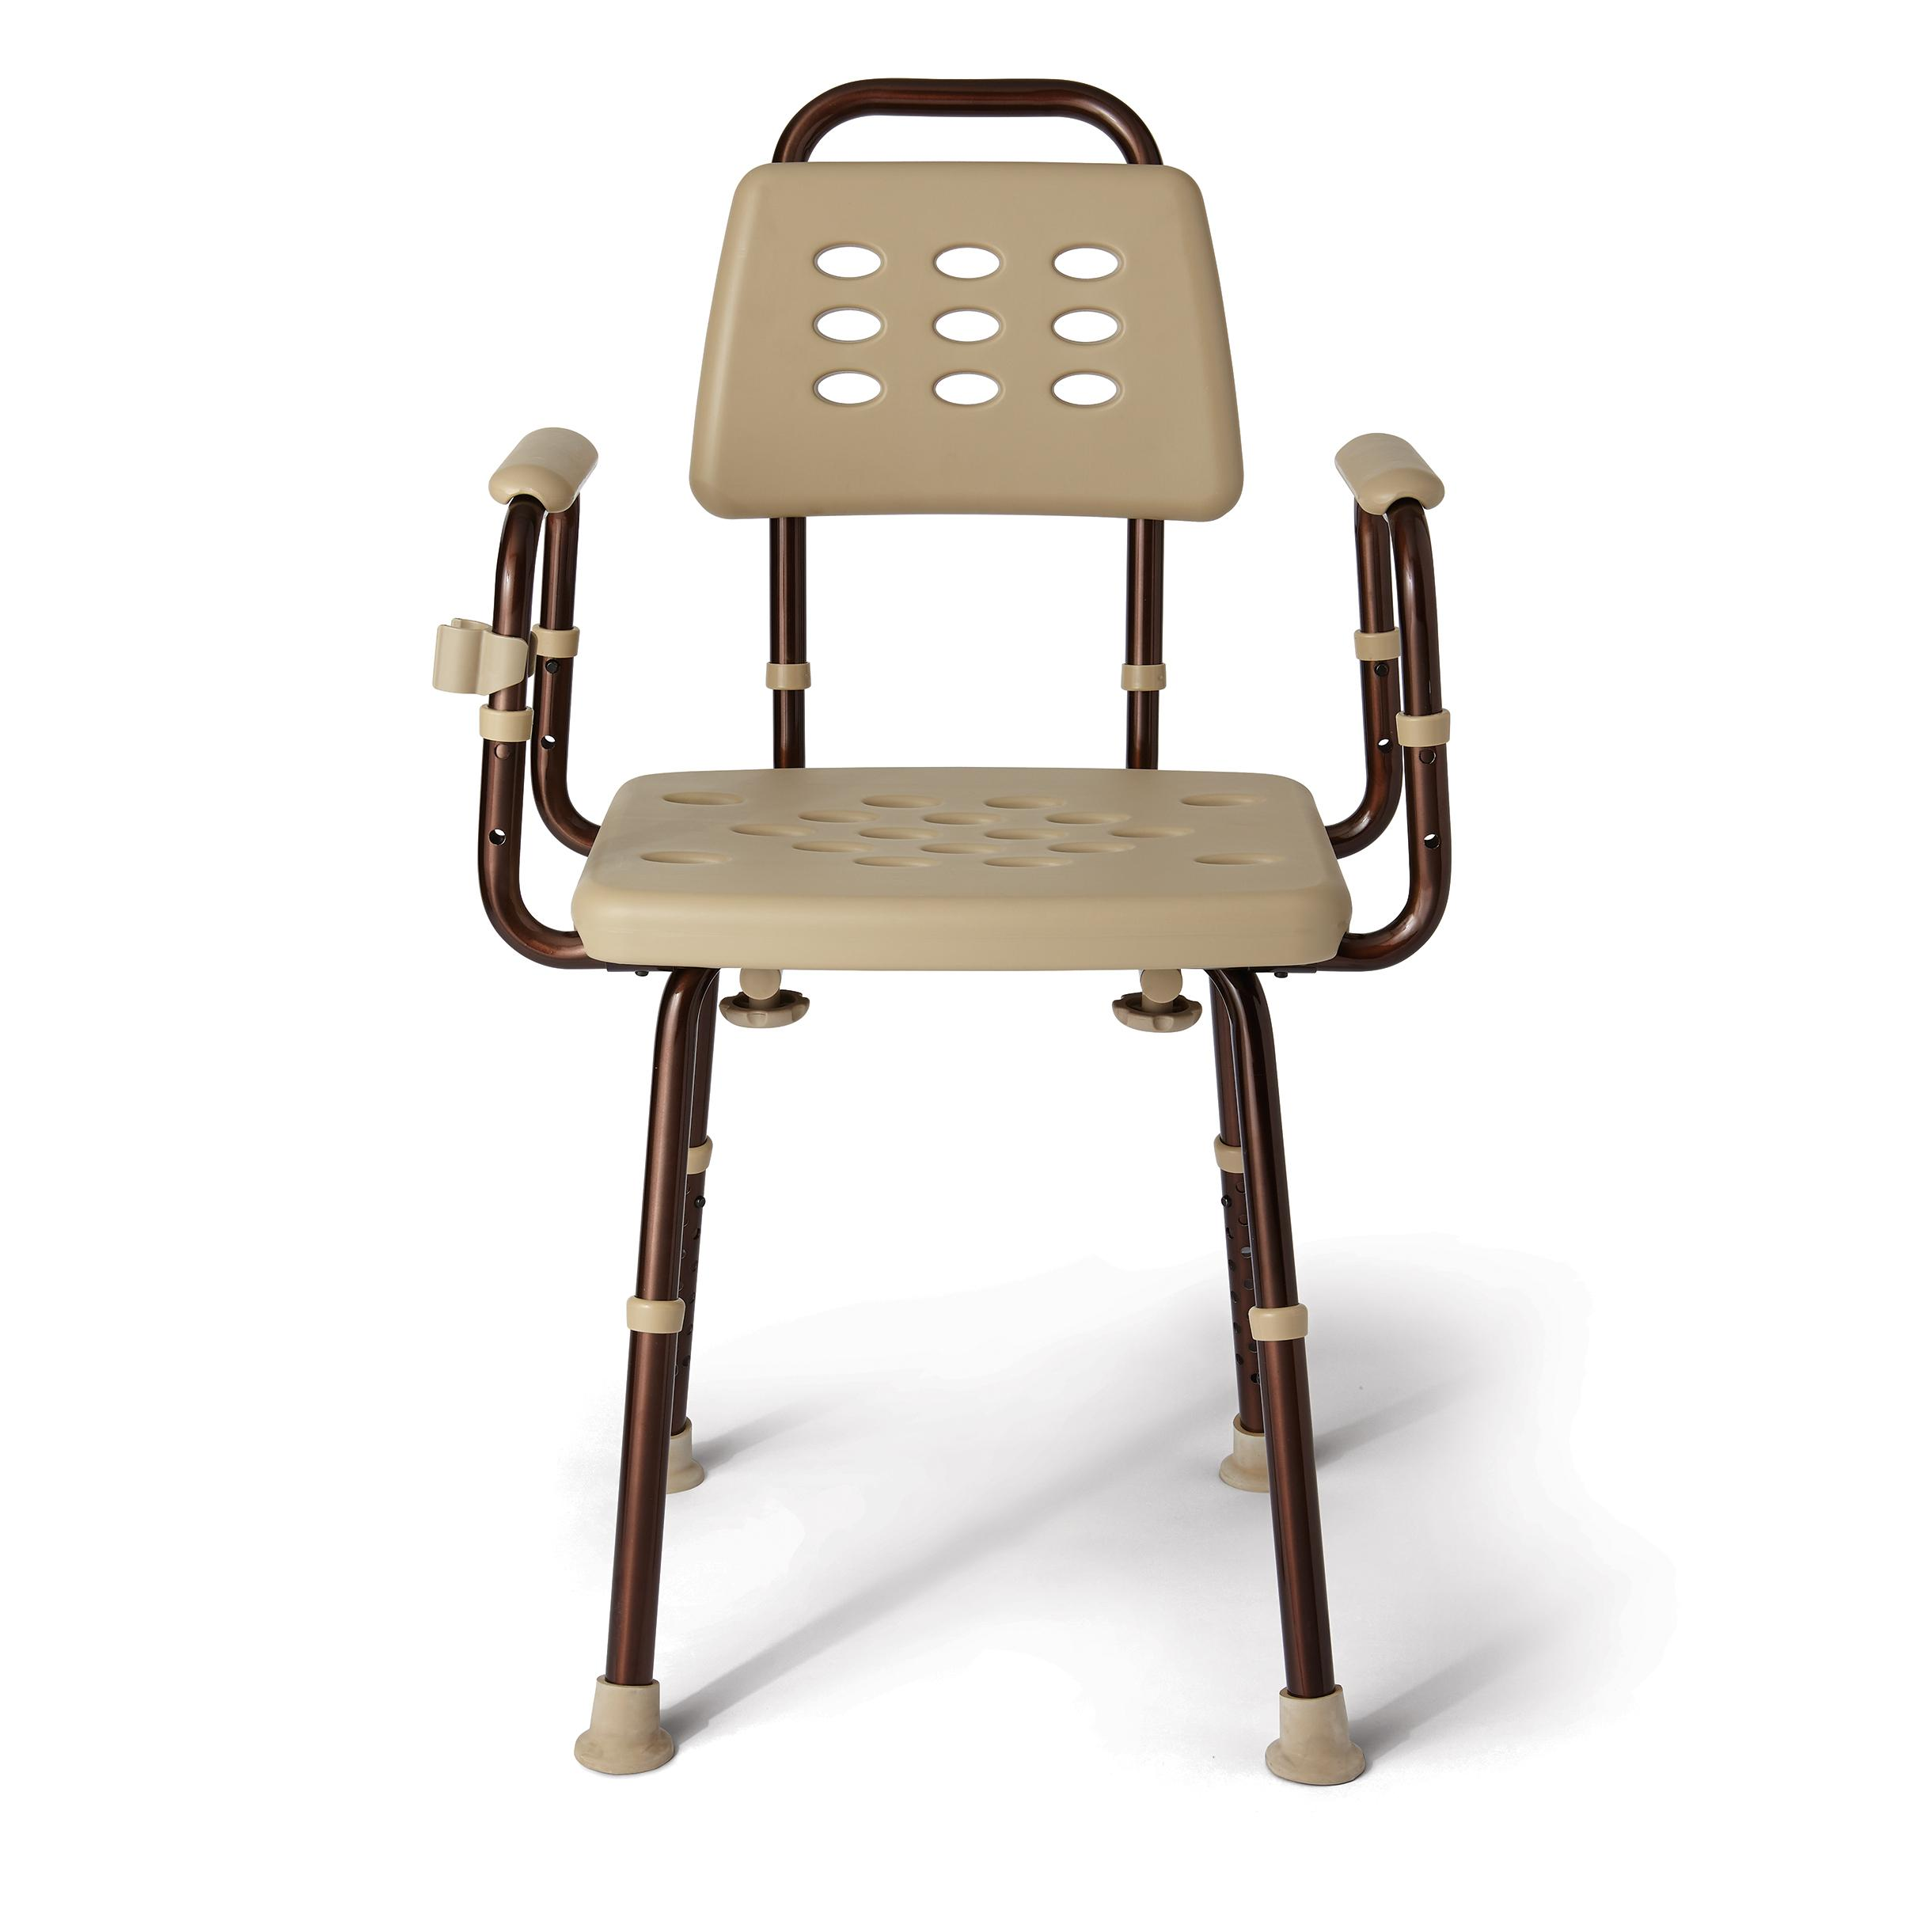 Amazon Medline Elements Shower Chair with Back Microban